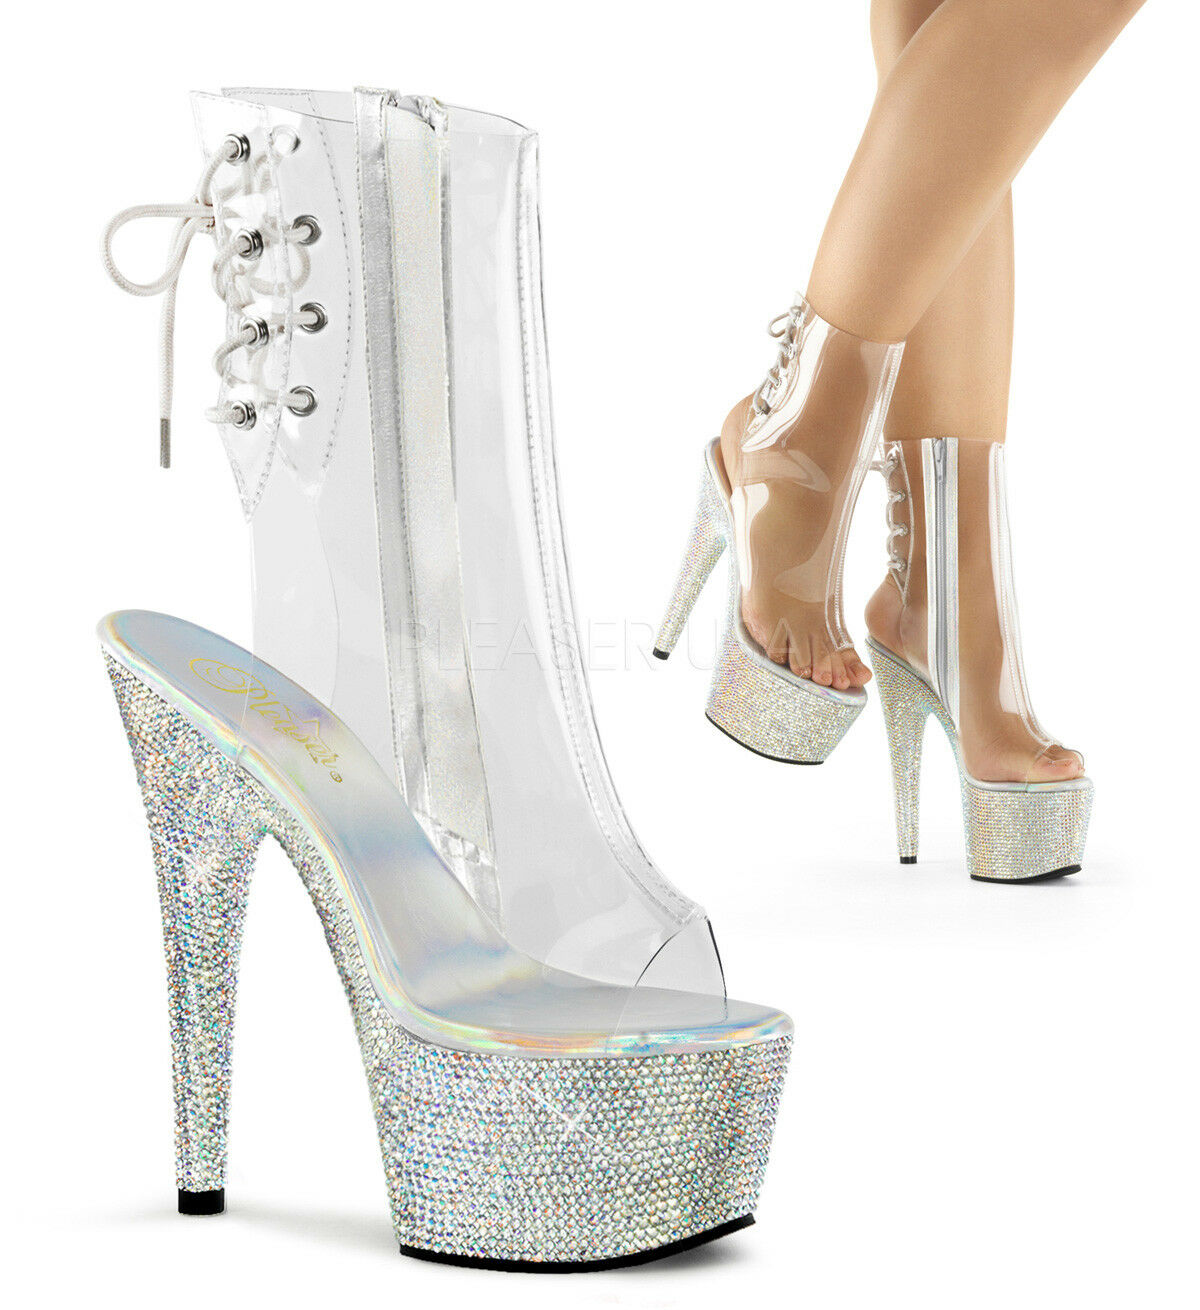 BEJEWELED-1018DM-7 Exotic Dancing, Clubwear, Ankle High 7